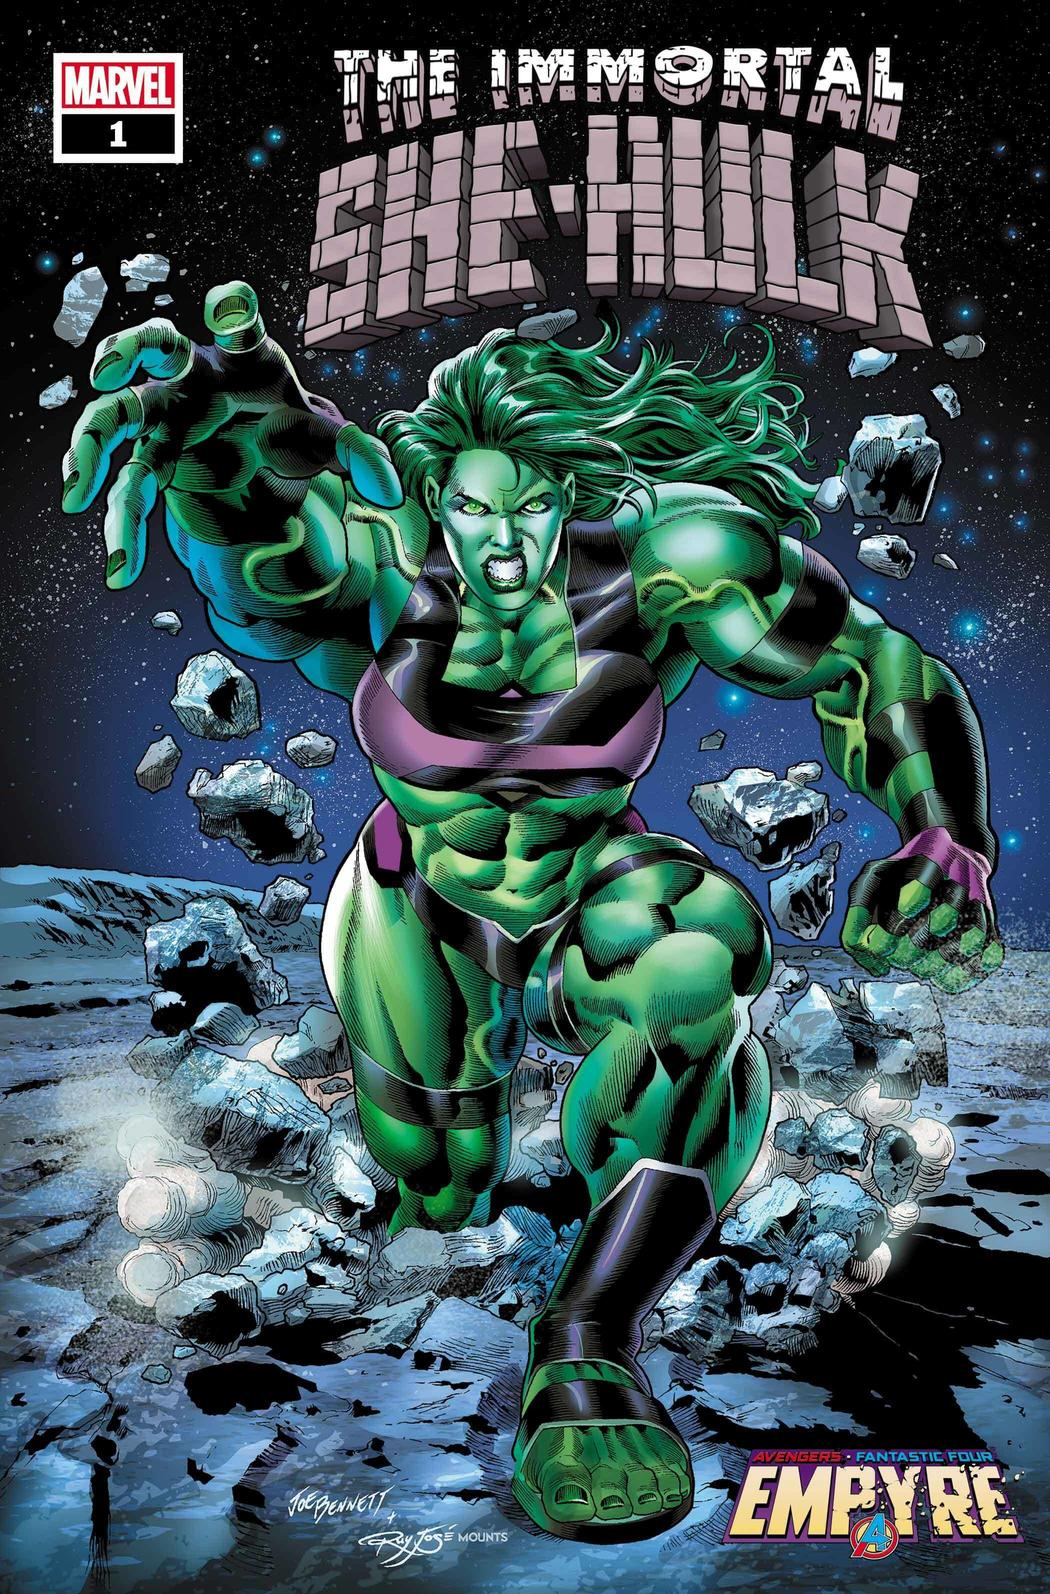 IMMORTAL SHE-HULK #1 WRITTEN BY AL EWING, ART BY JON DAVIS-HUNT, COVER BY JOE BENNETT